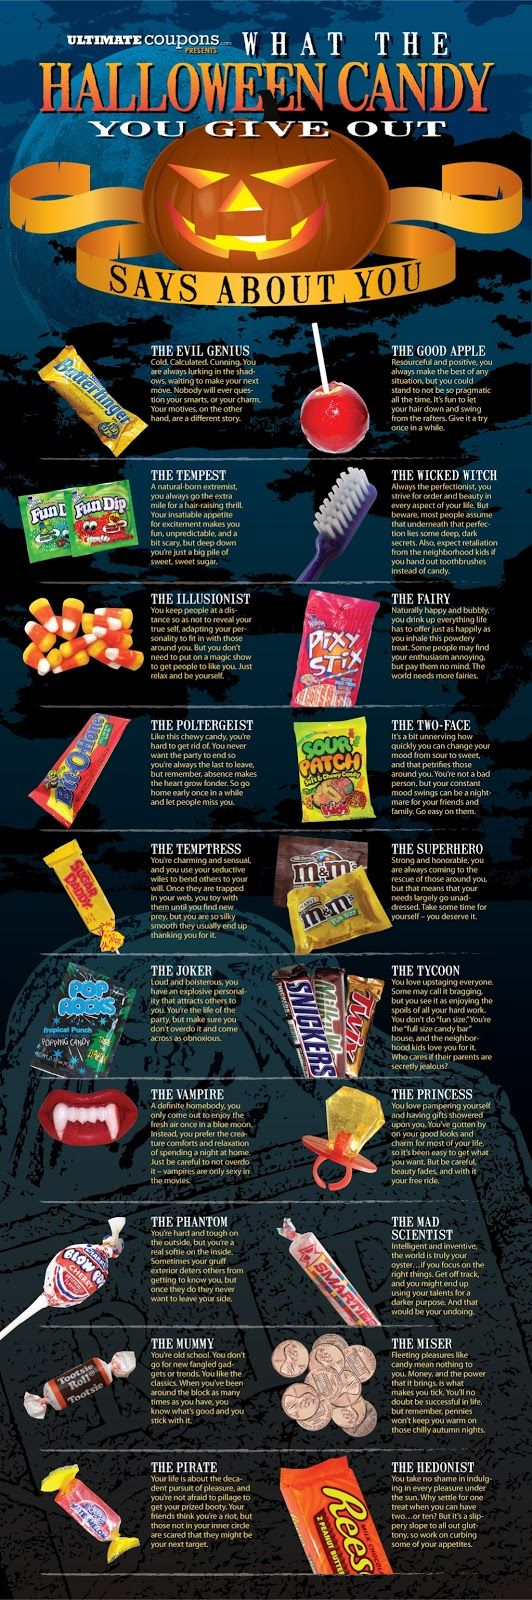 Cool Halloween Infographic-What the Candy You Give out Says About You!